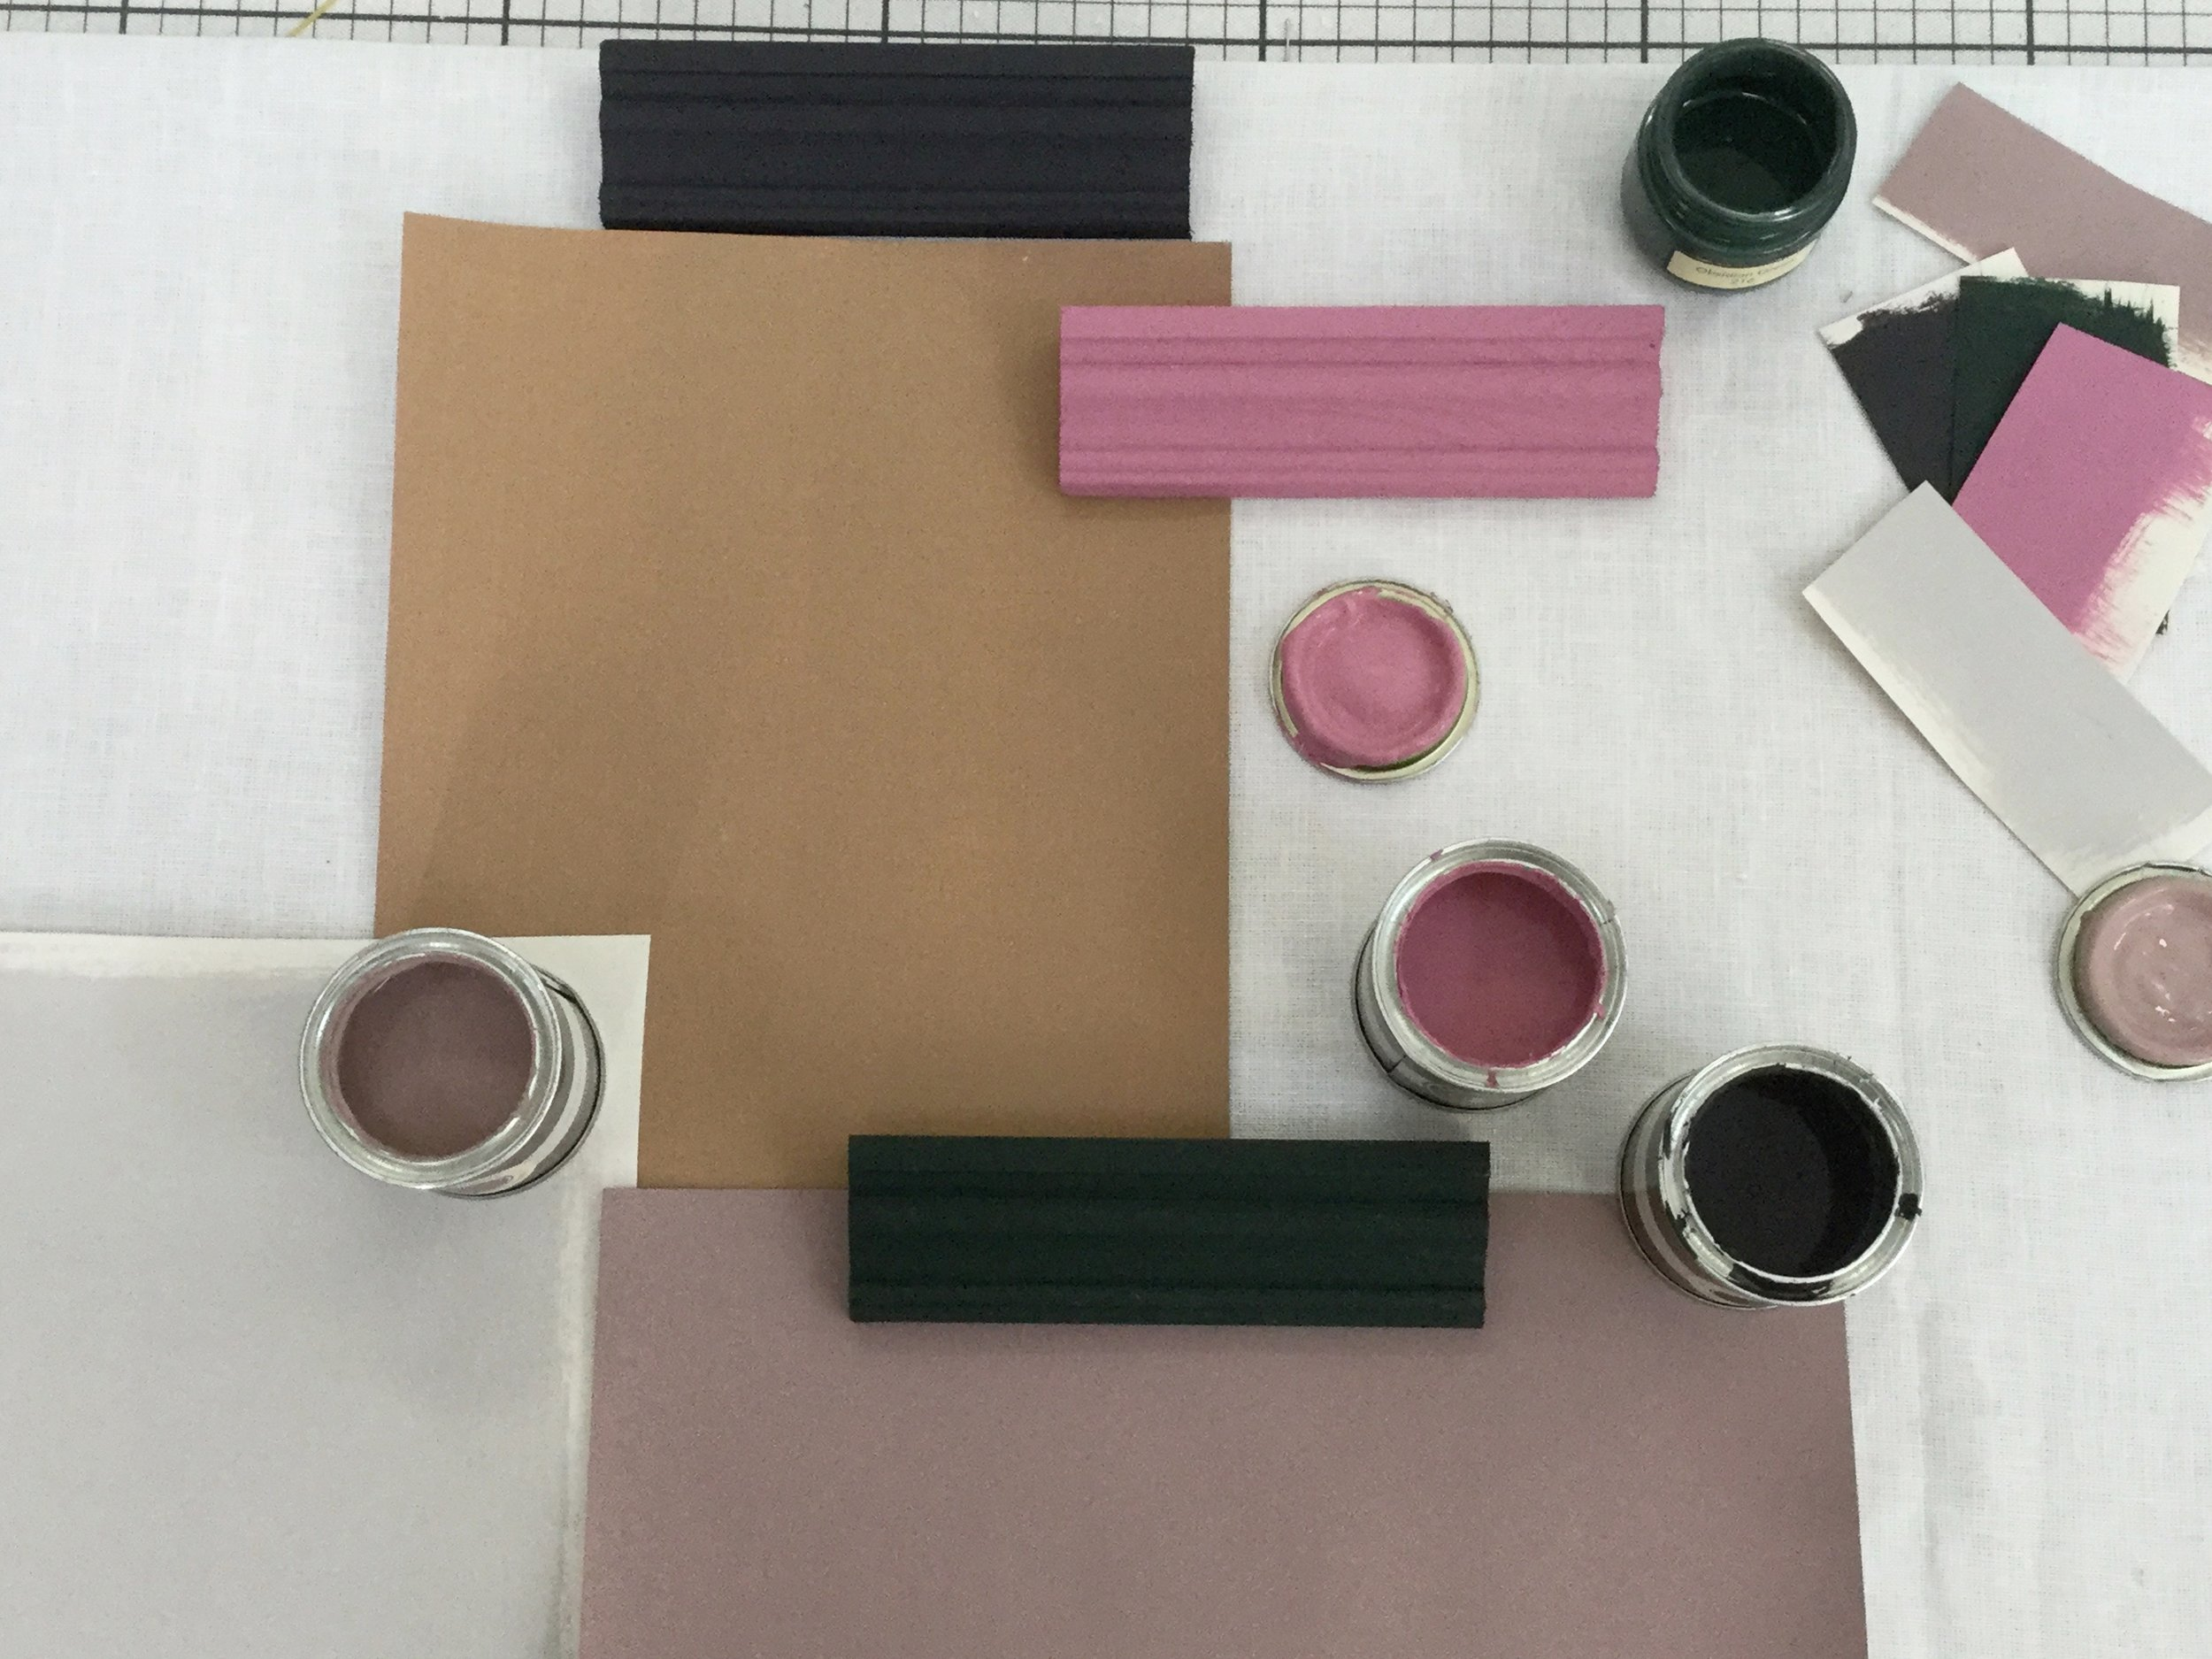 Clockwise from Bottom Left - Elephant's Breath  - Farrow & Ball,  Spiced Honey  - Dulux, Paean Black and  Rangwali  - Farrow & Ball,  Obsidian Green  - Little Greene,  Sulking Room Pink  - Farrow & Ball